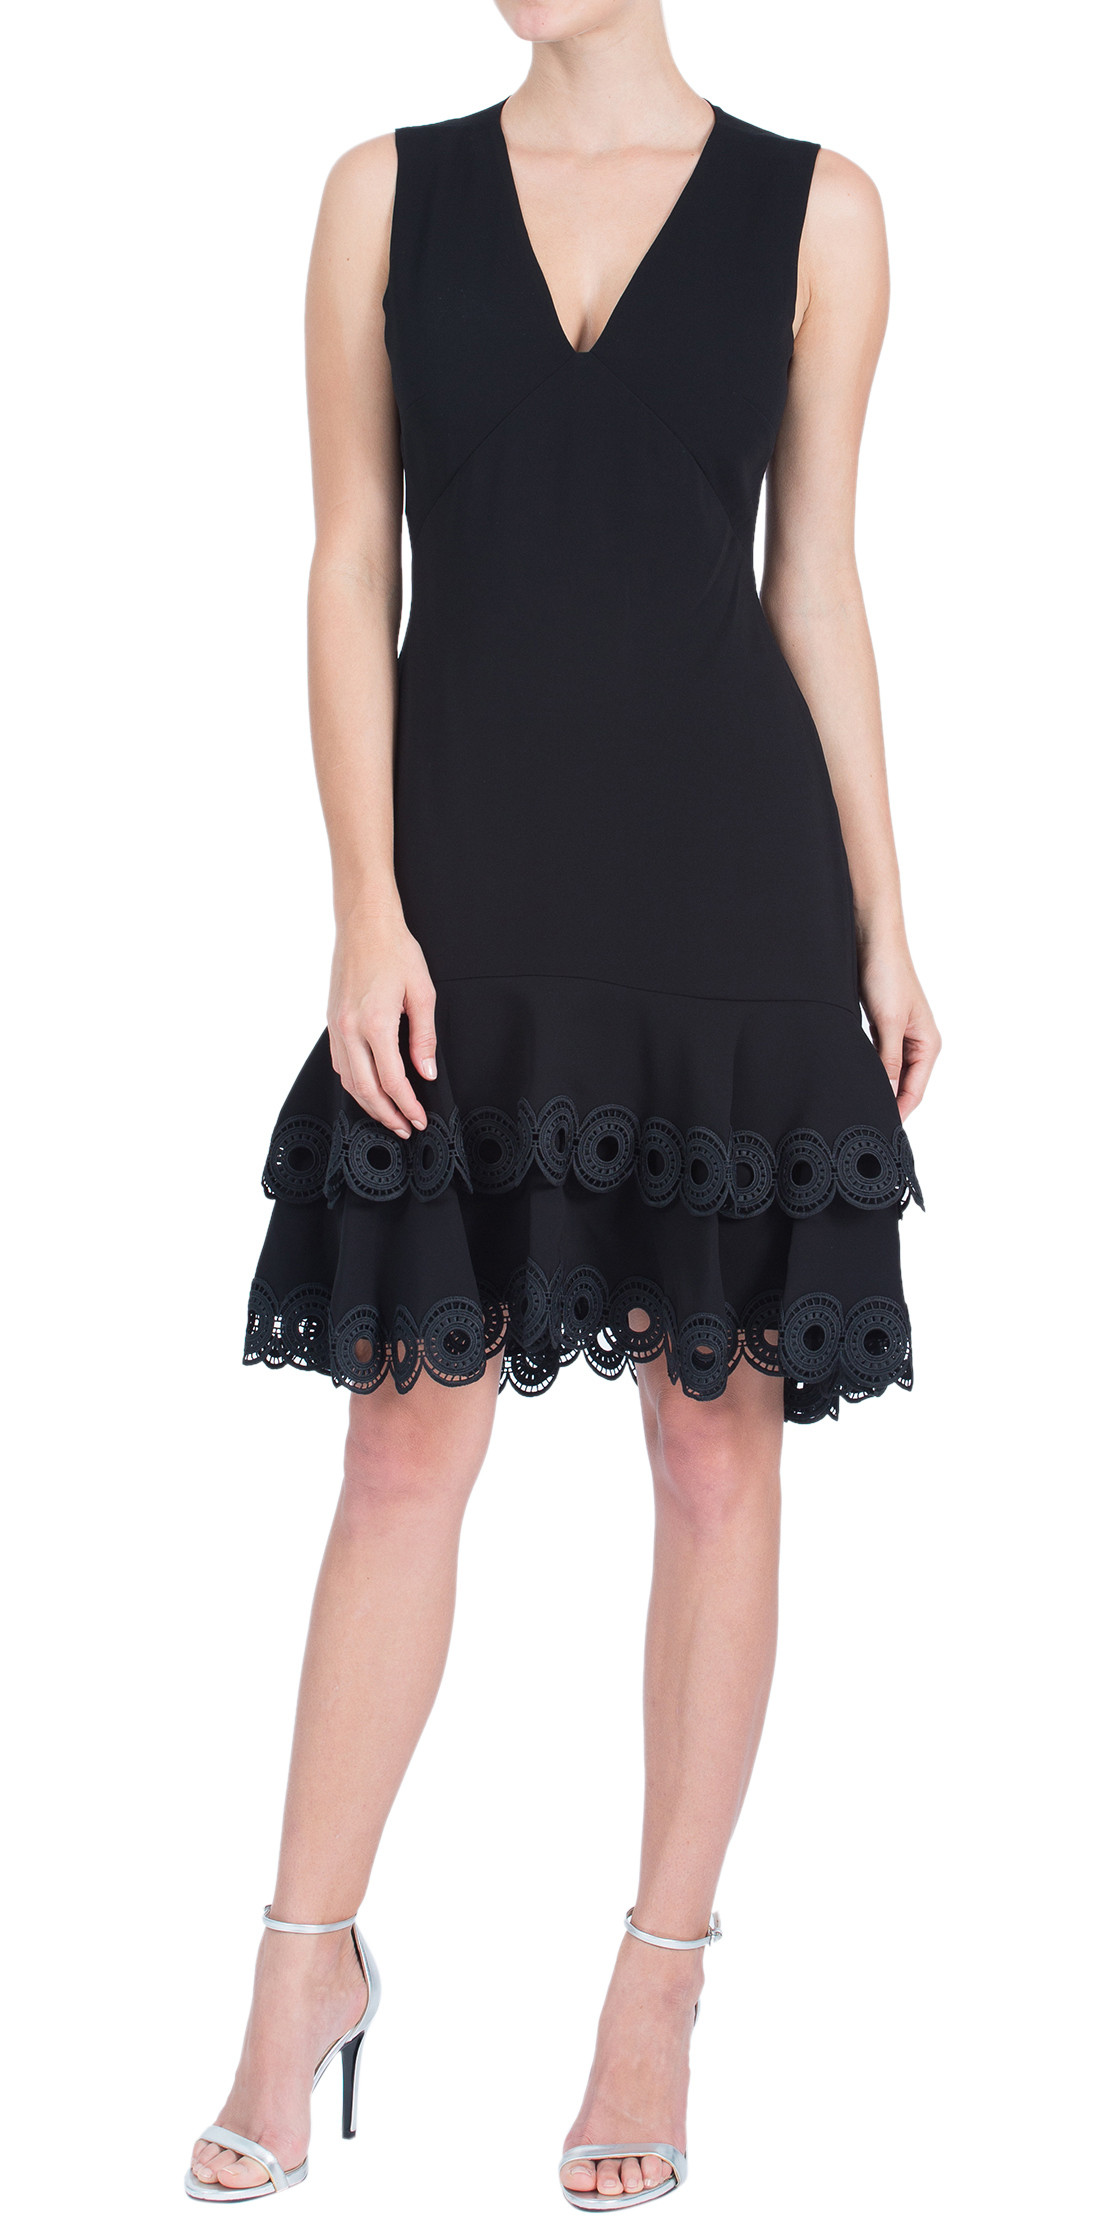 Shoshanna Sleeveless Ruffled Dress